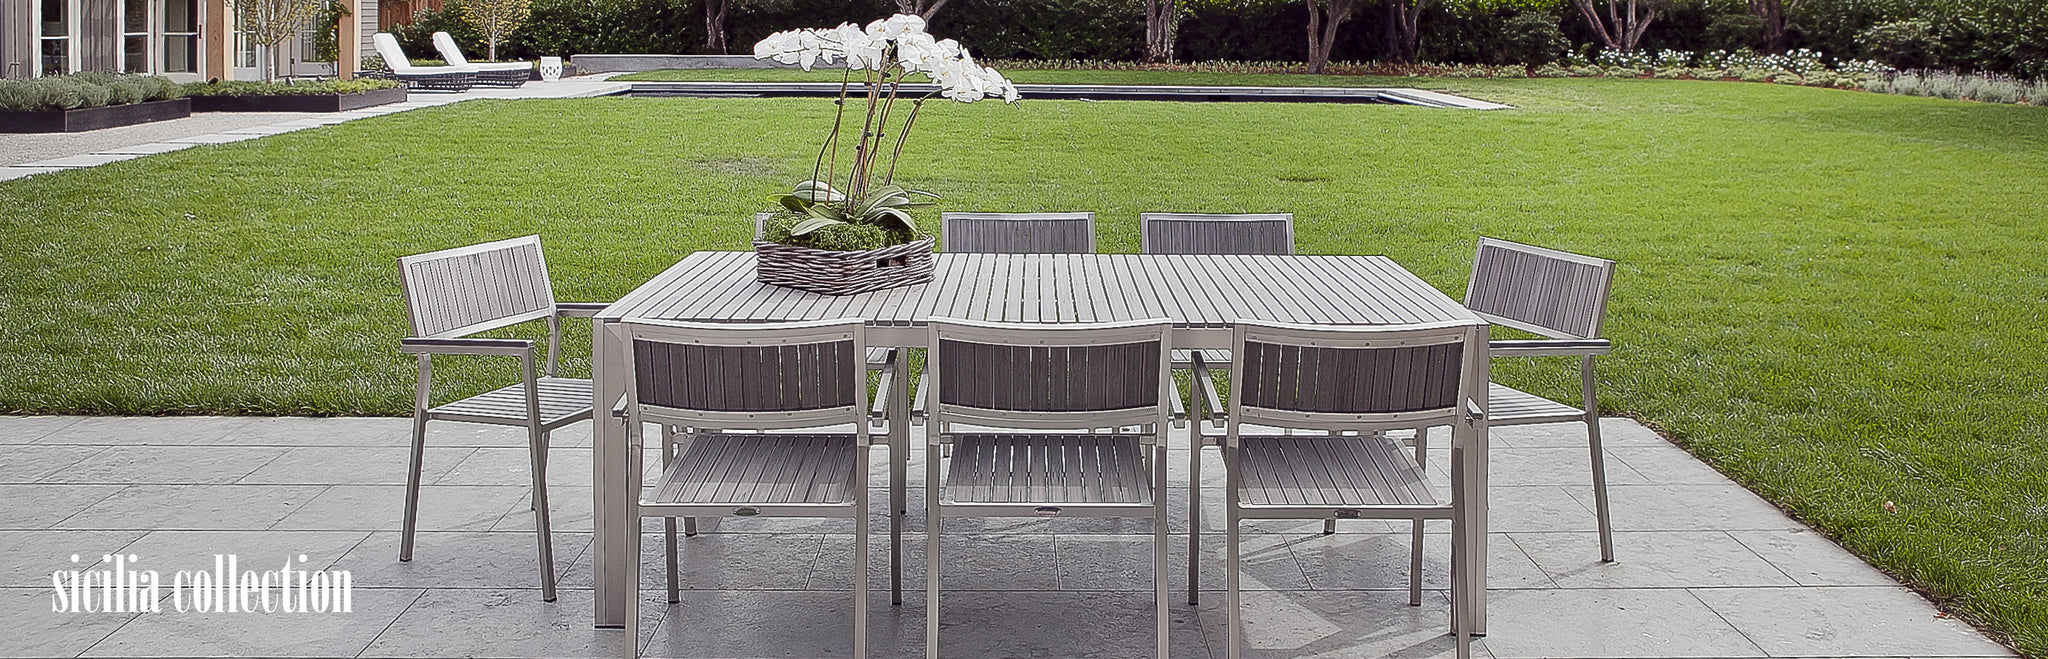 Modern Patio Furniture Table contemporary patio furniture - denver - modern outdoor chairs